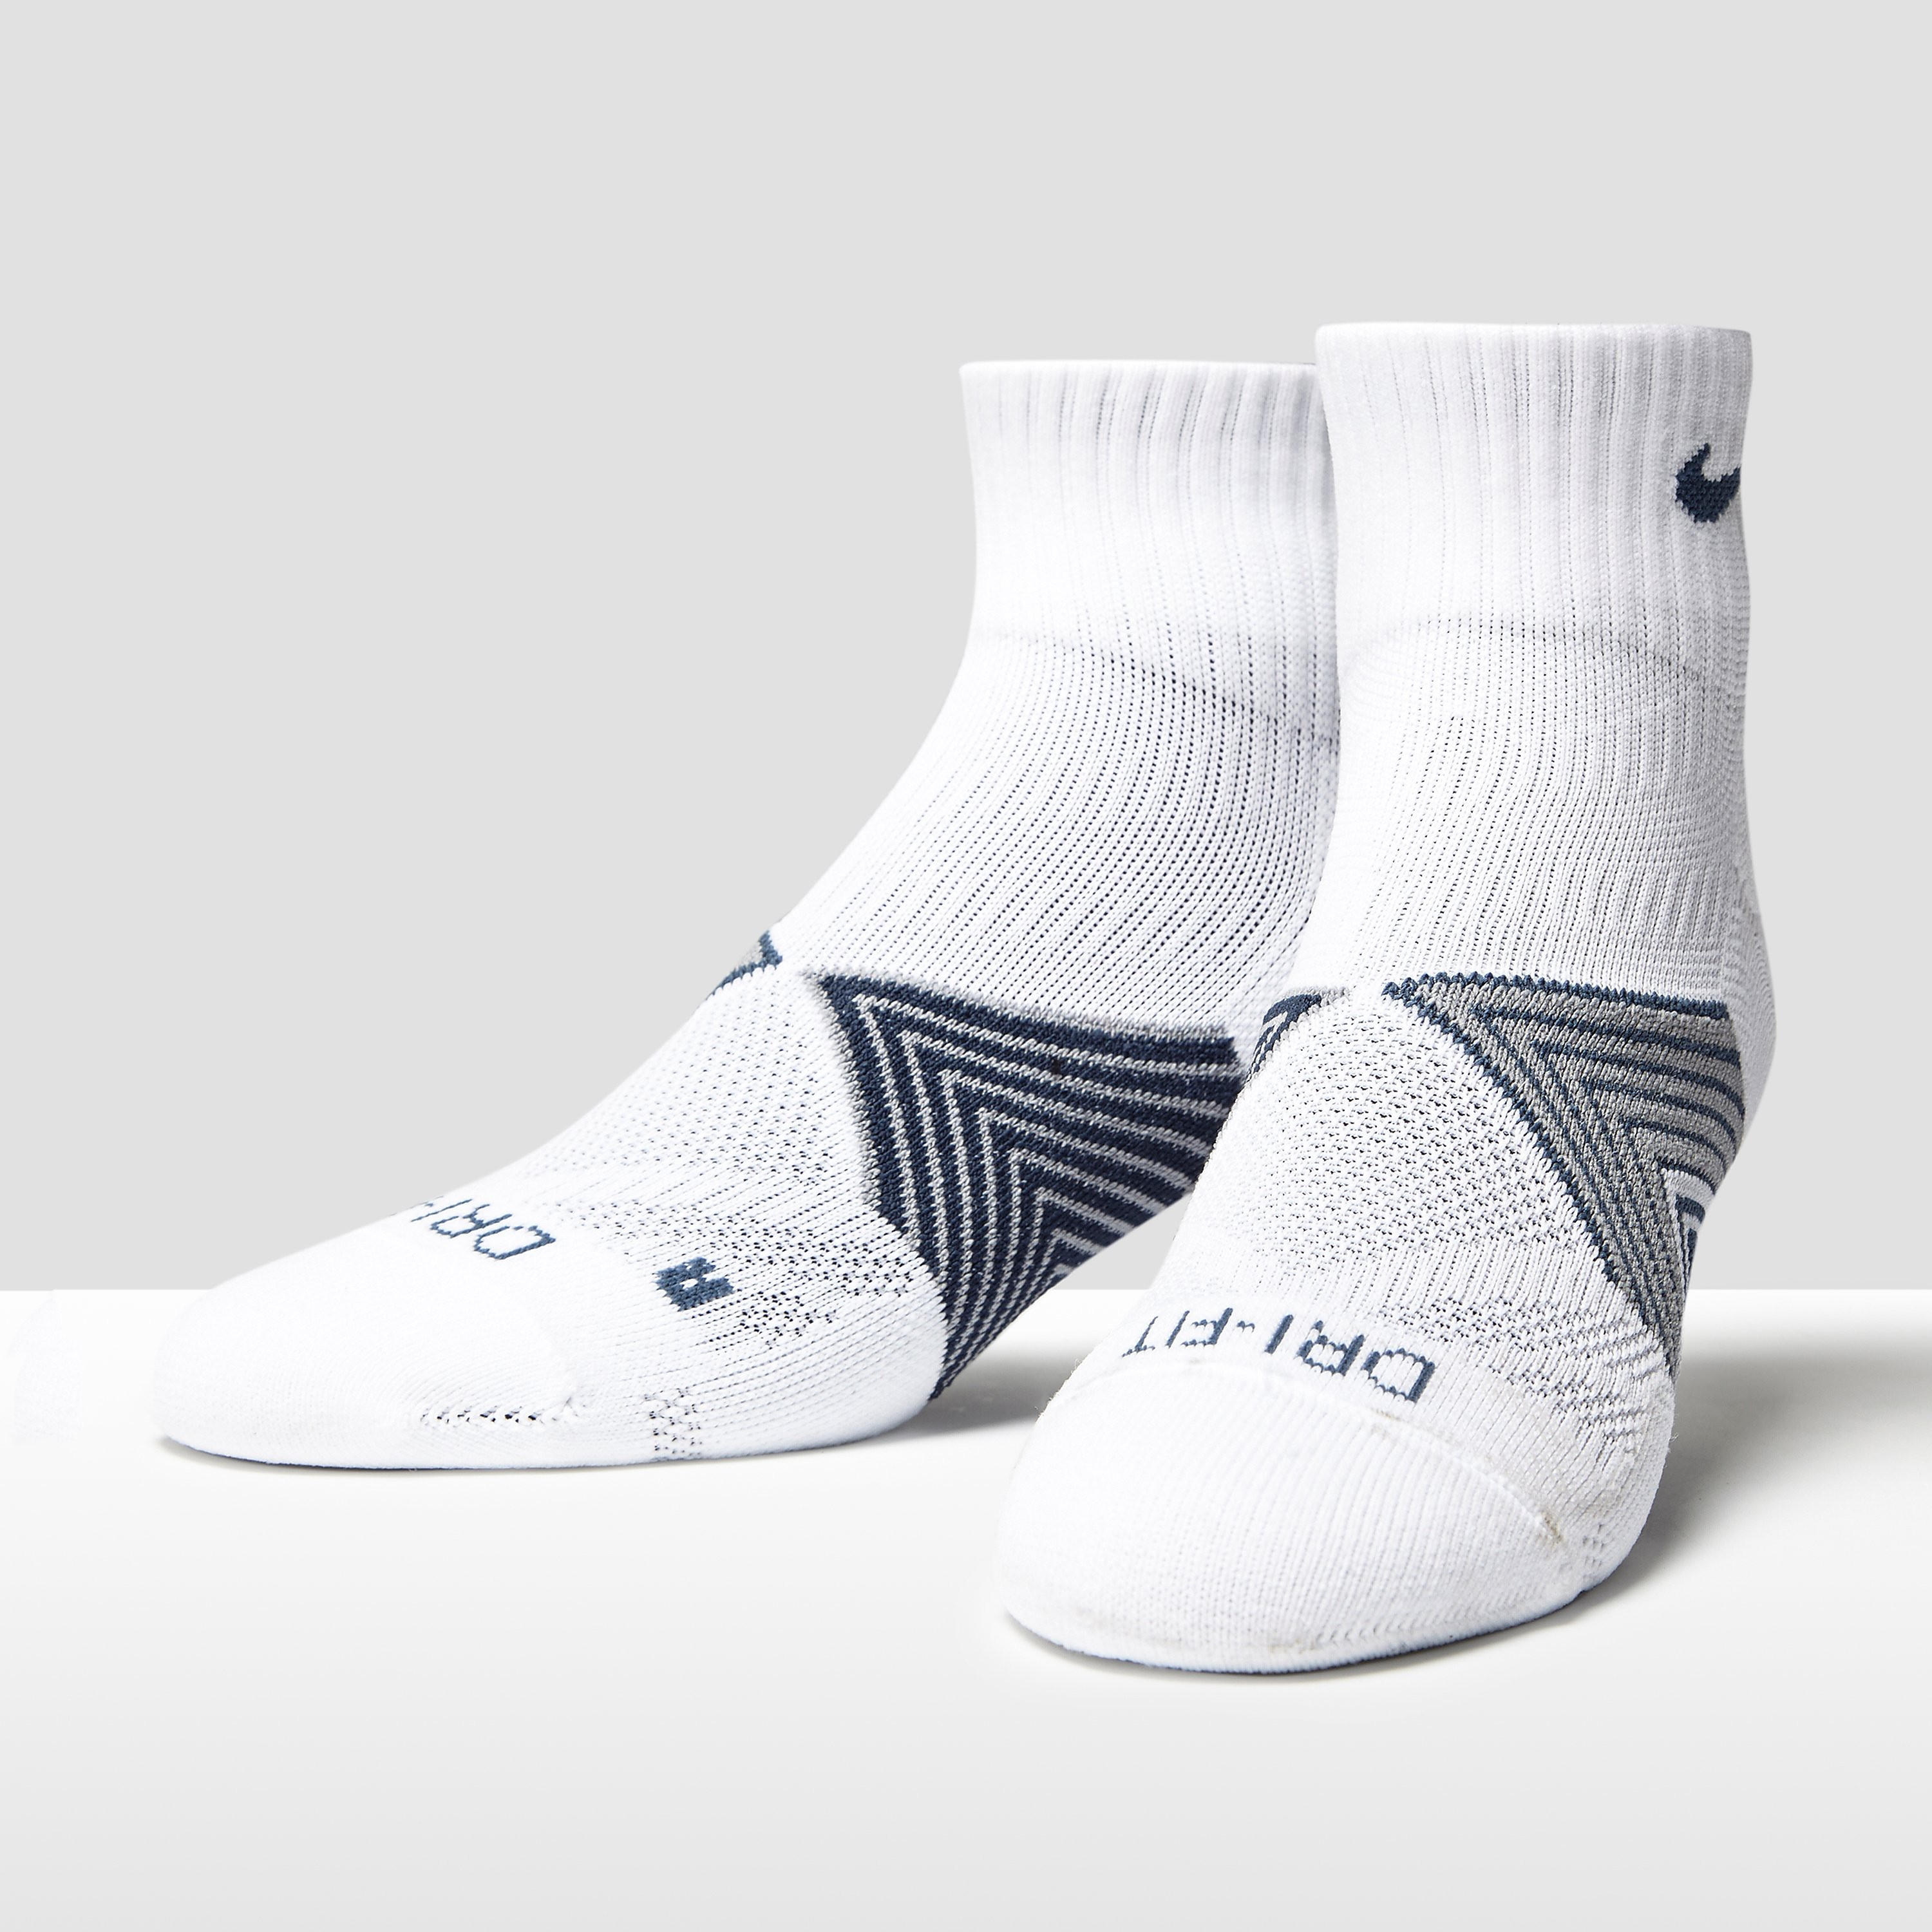 Nike Cushion Dynamic Arch Quarter Running Socks